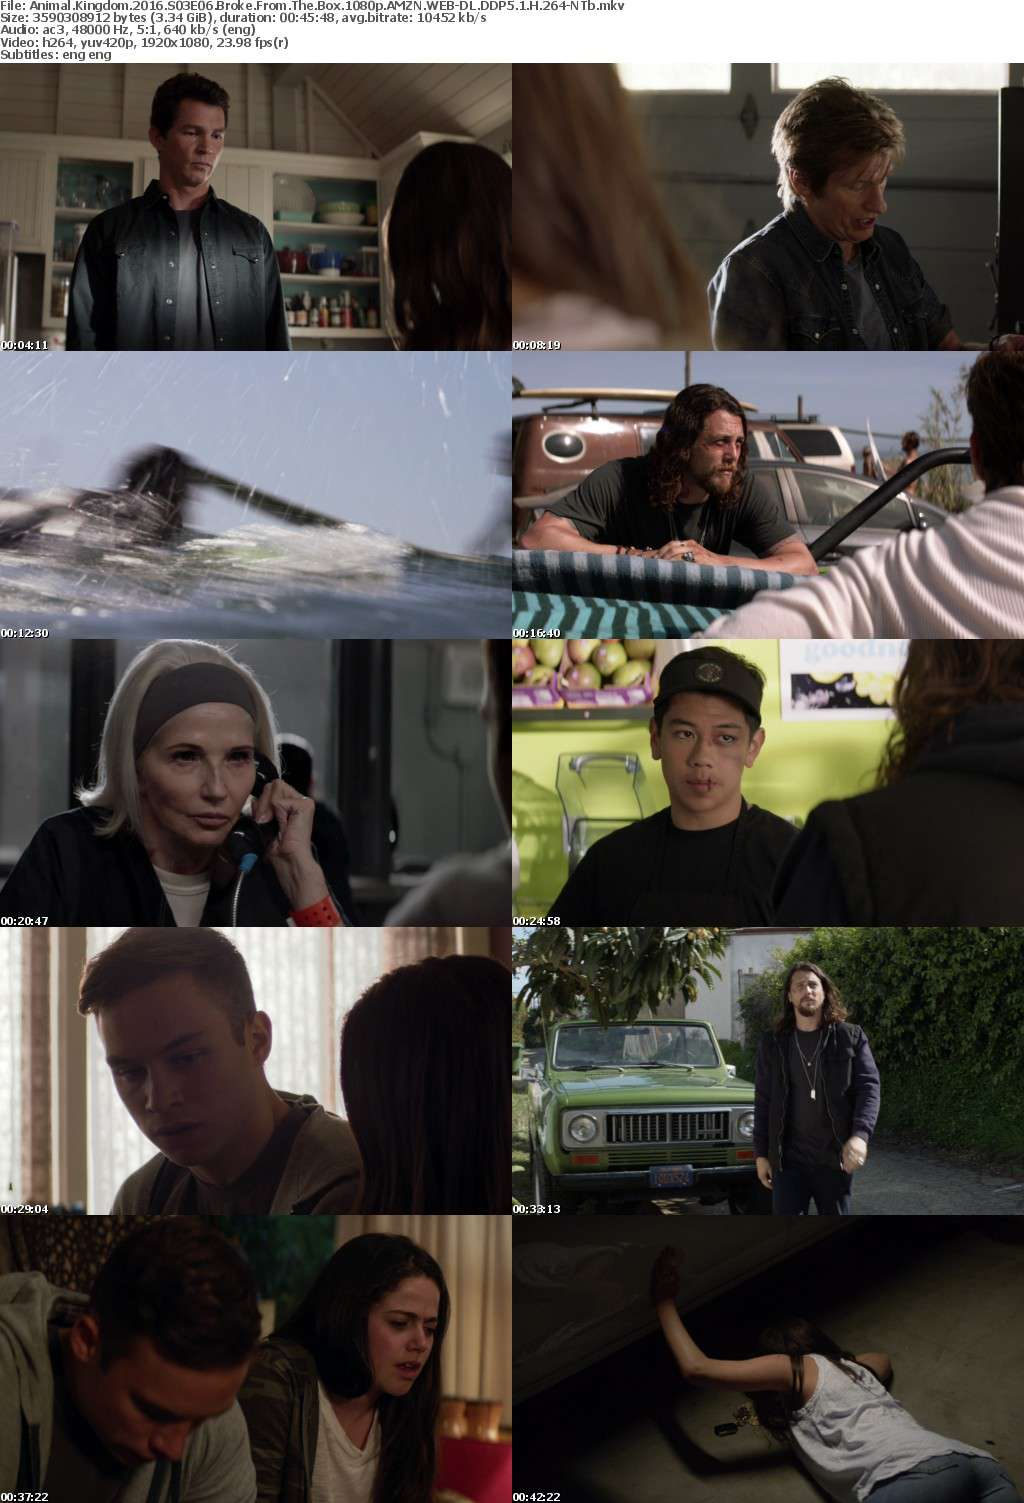 Animal Kingdom 2016 S03E06 Broke From The Box 1080p AMZN WEB-DL DDP5 1 H 264-NTb